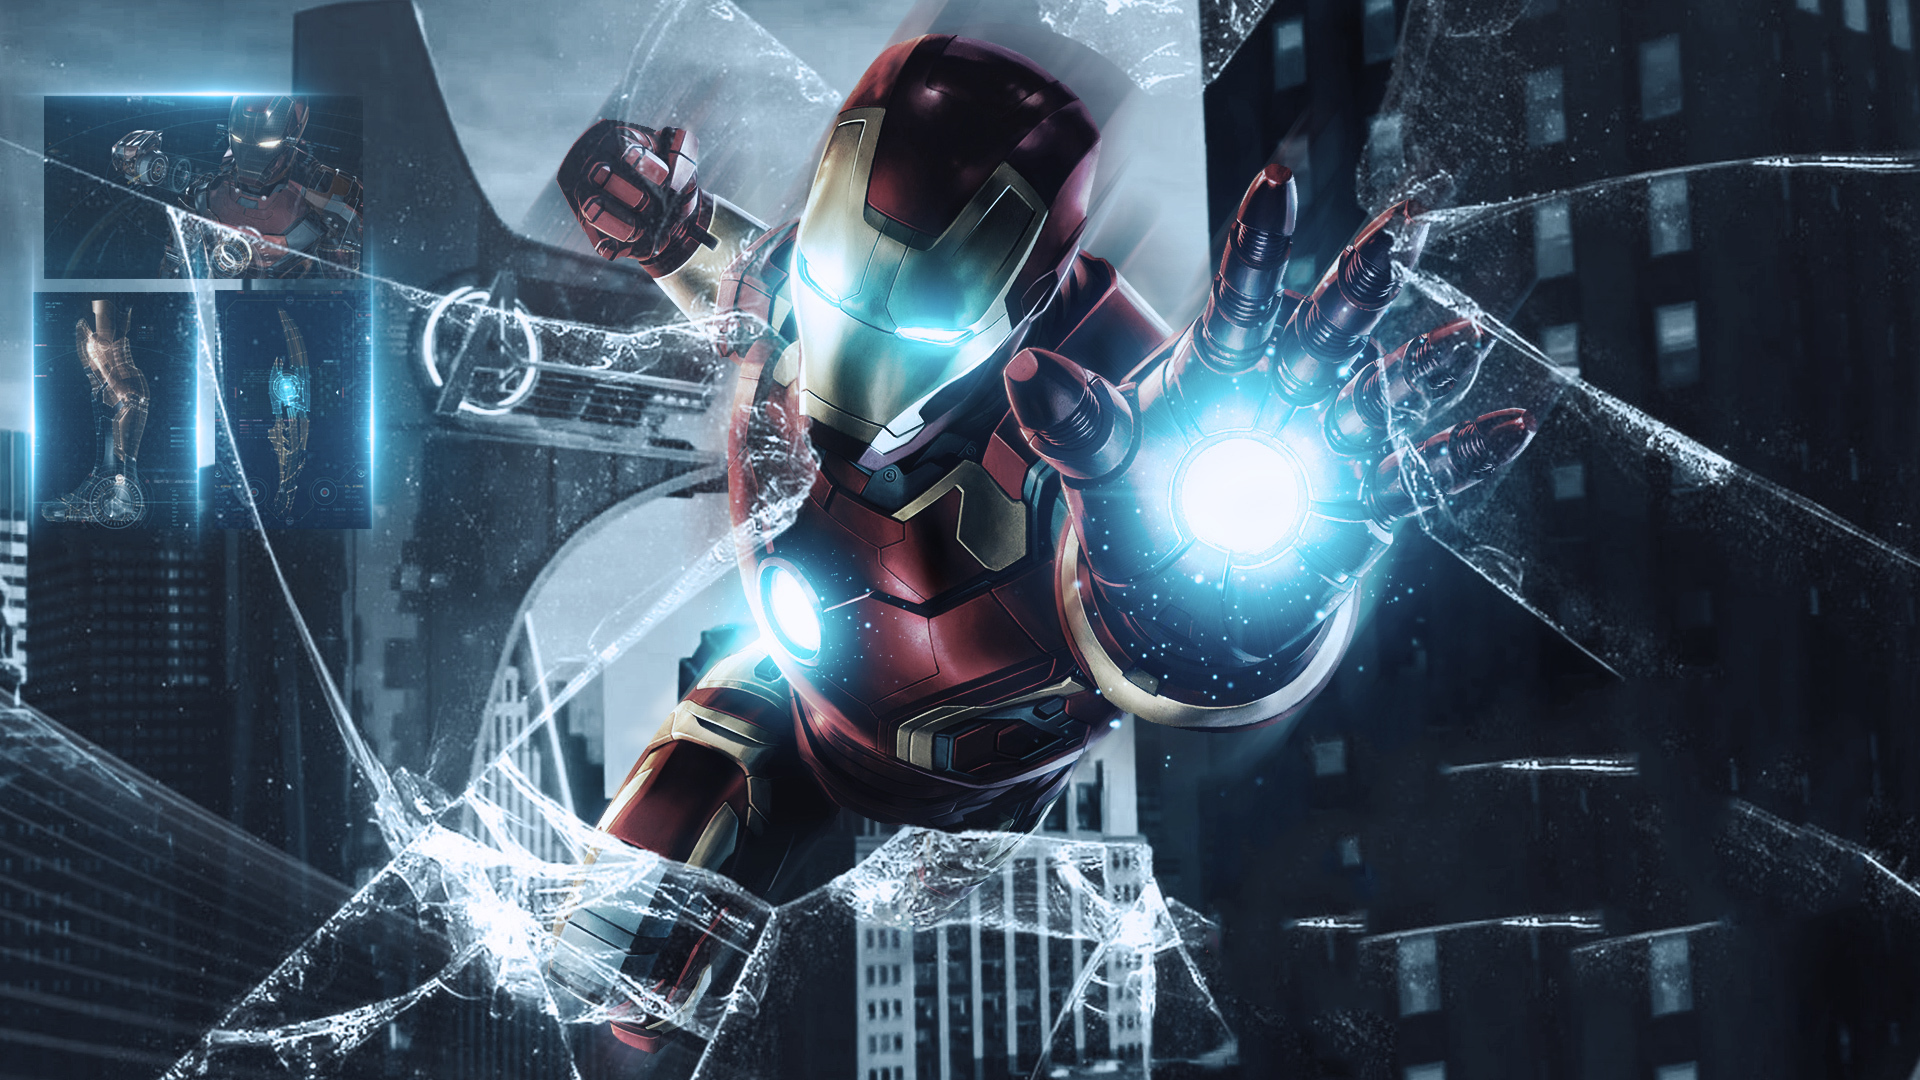 Cool 1080p Full Hd Avengers Endgame Iron Man Wallpaper Hd Wallpaper